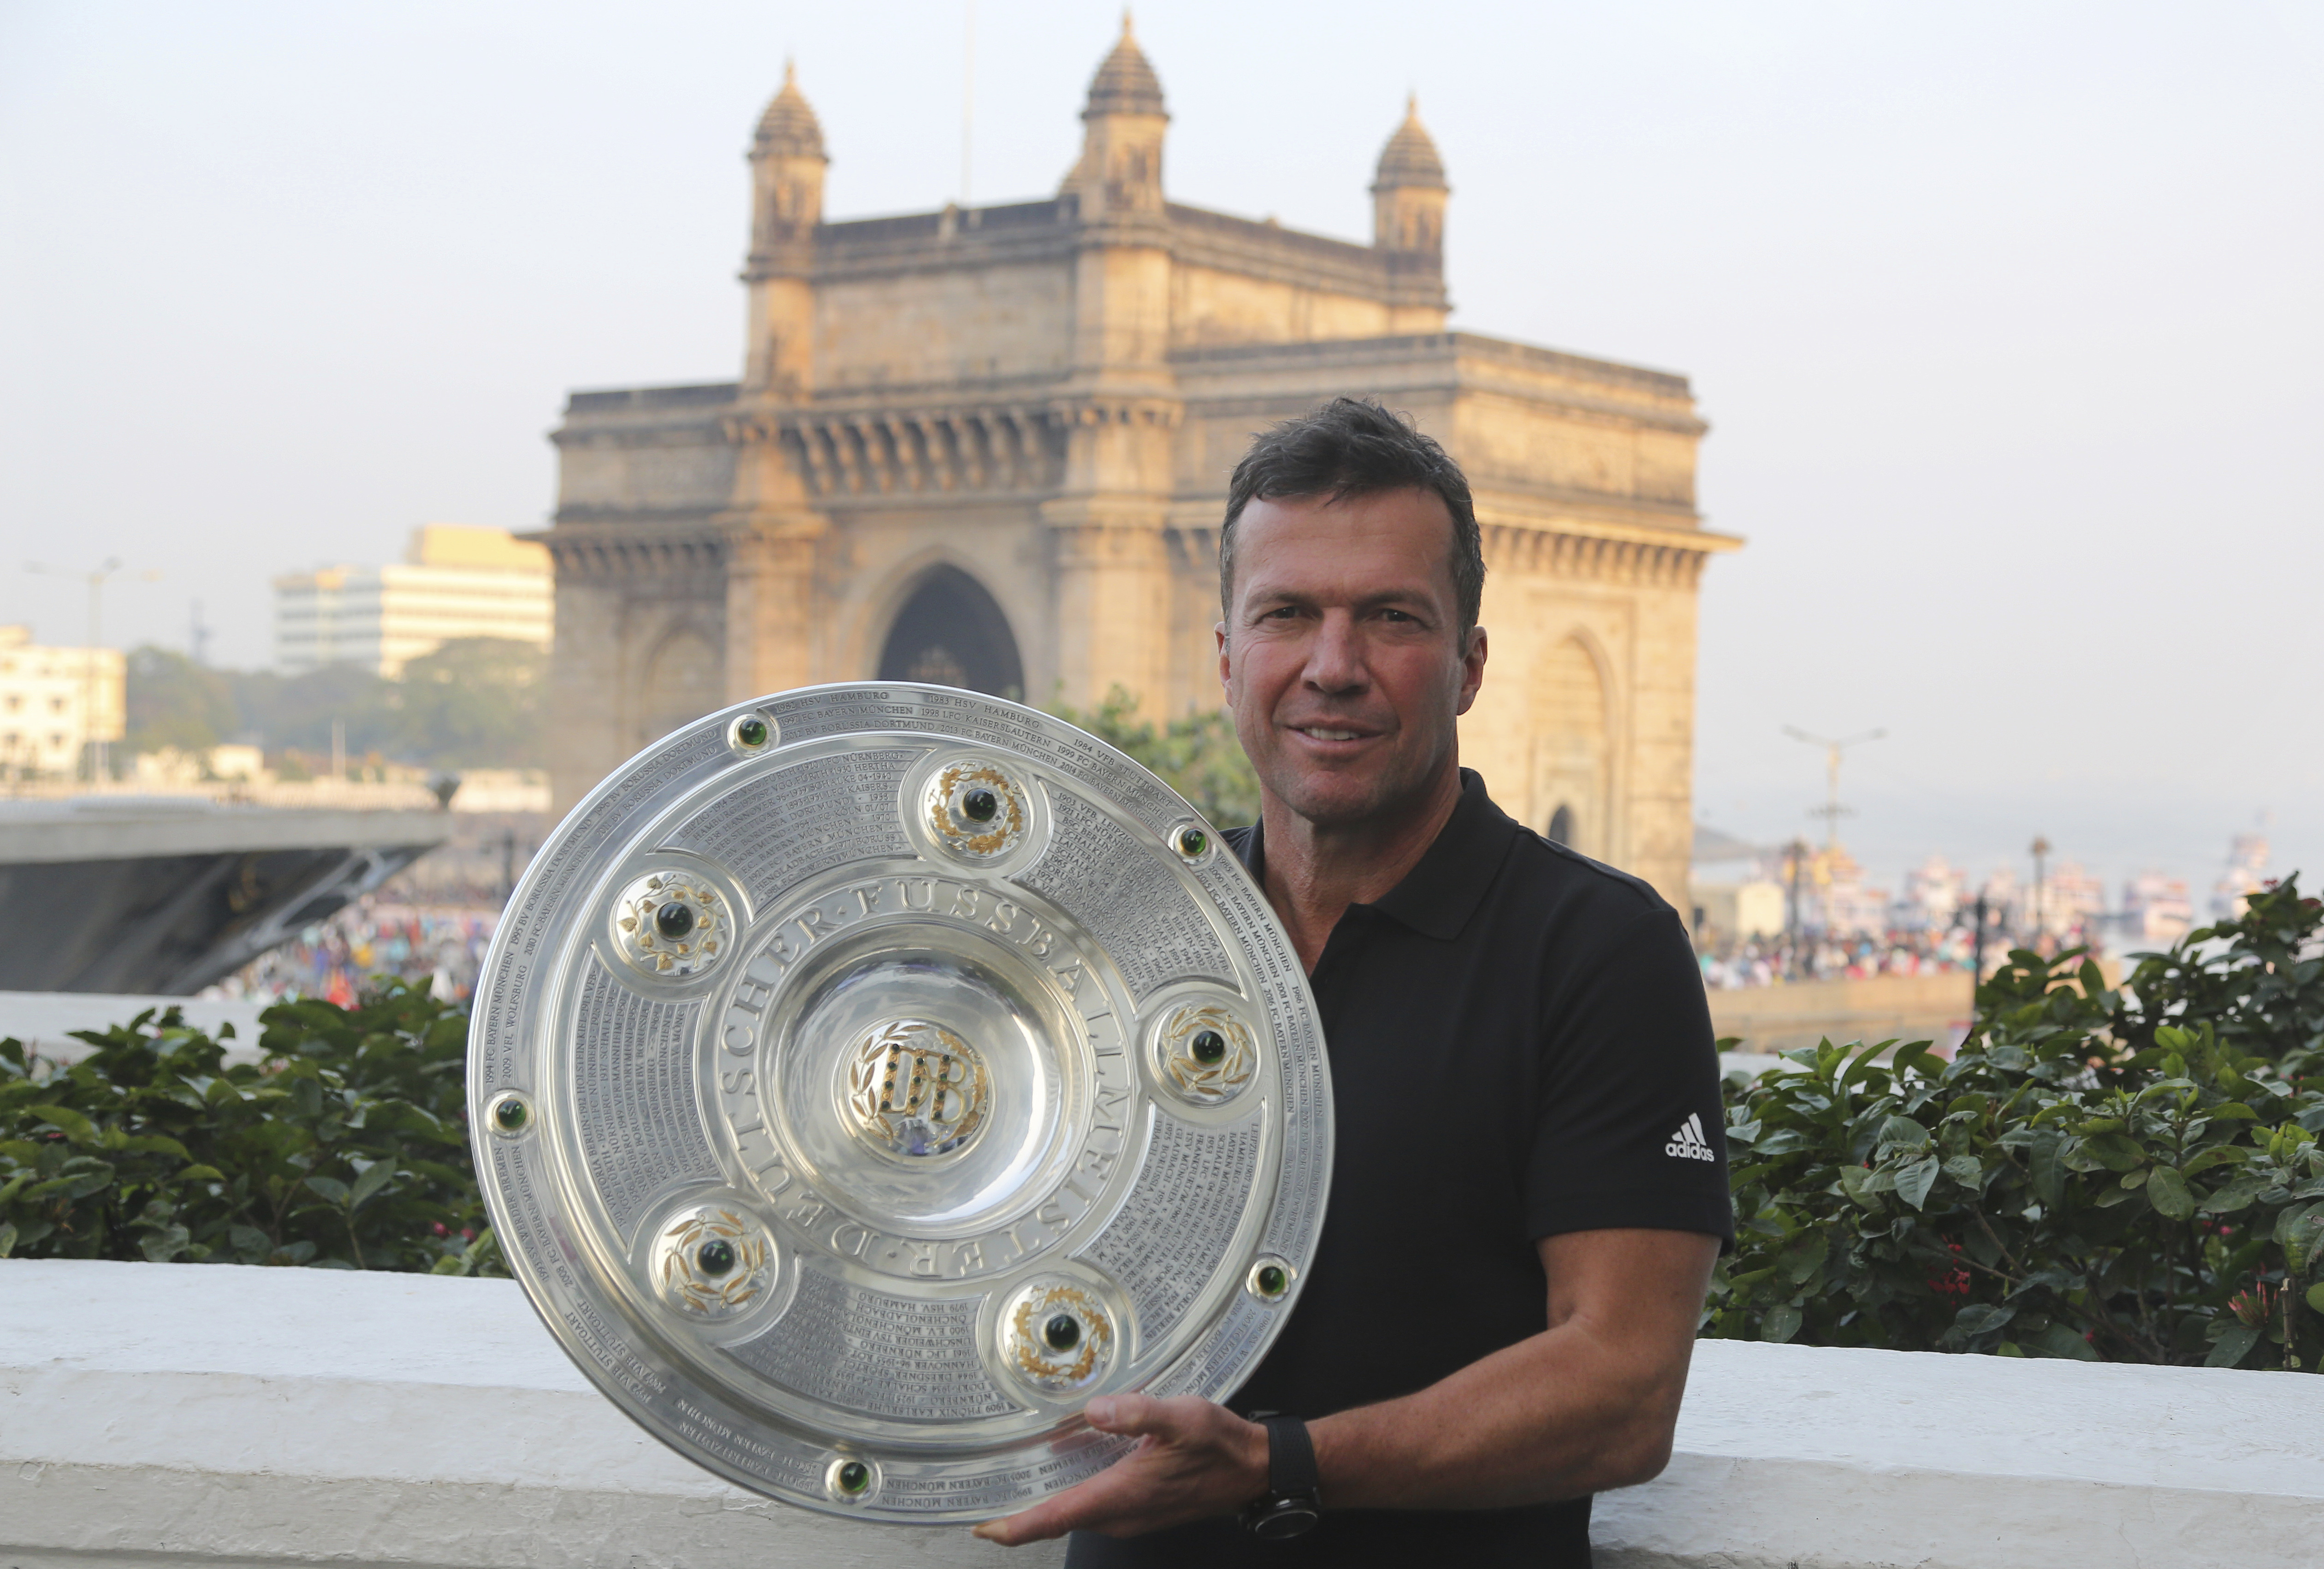 German Football player Lothar Matthaus poses for a photograph with Bundesliga trophy near the Gateway of India monument in Mumbai - AP